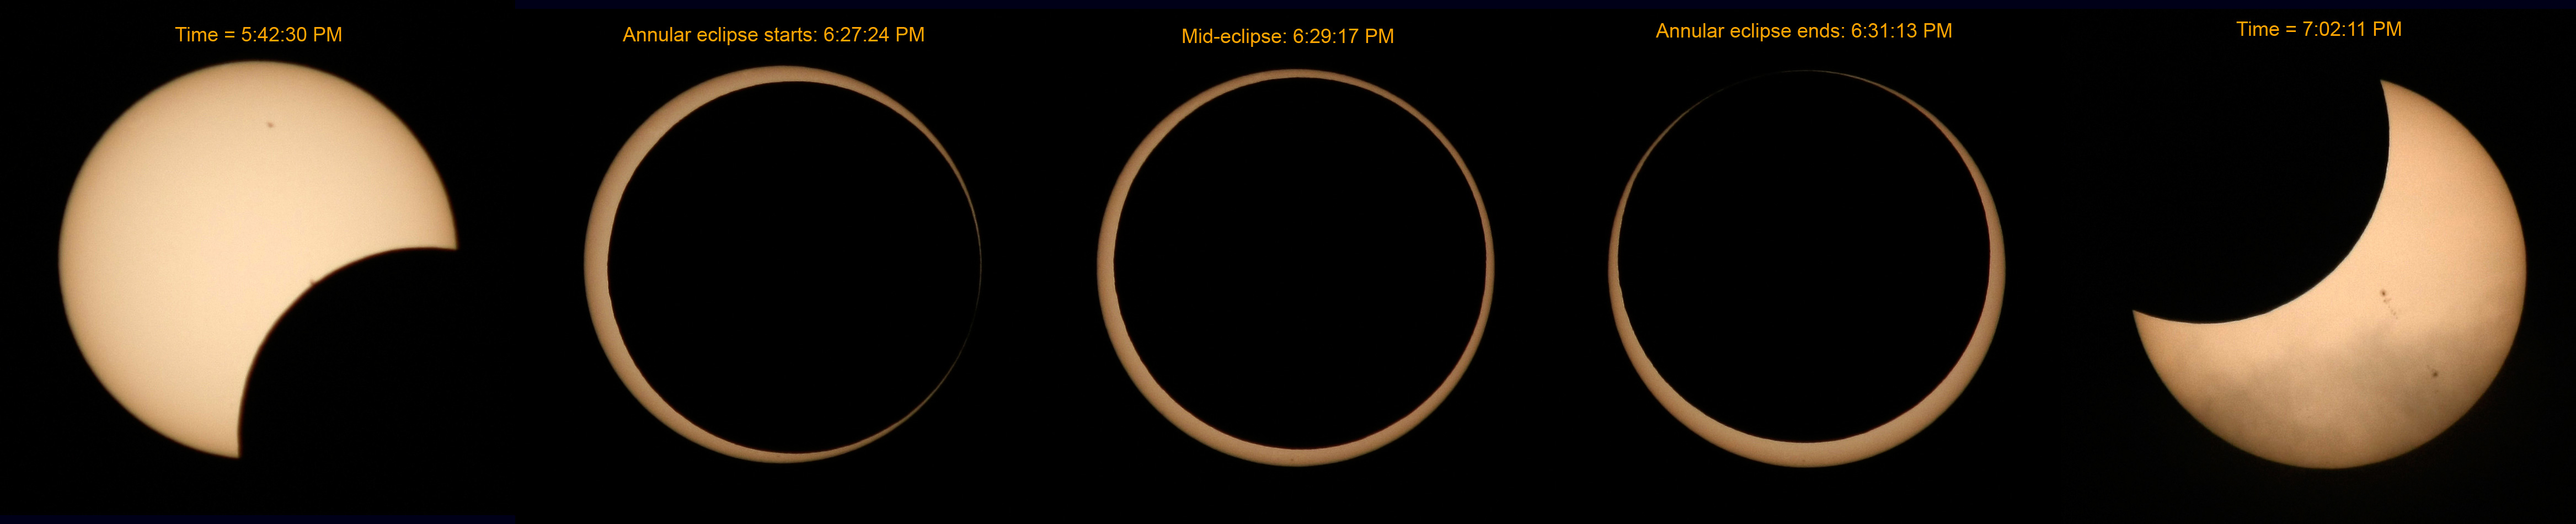 May 20, 2012 Annular Solar Eclipse from Red Bluff, CA